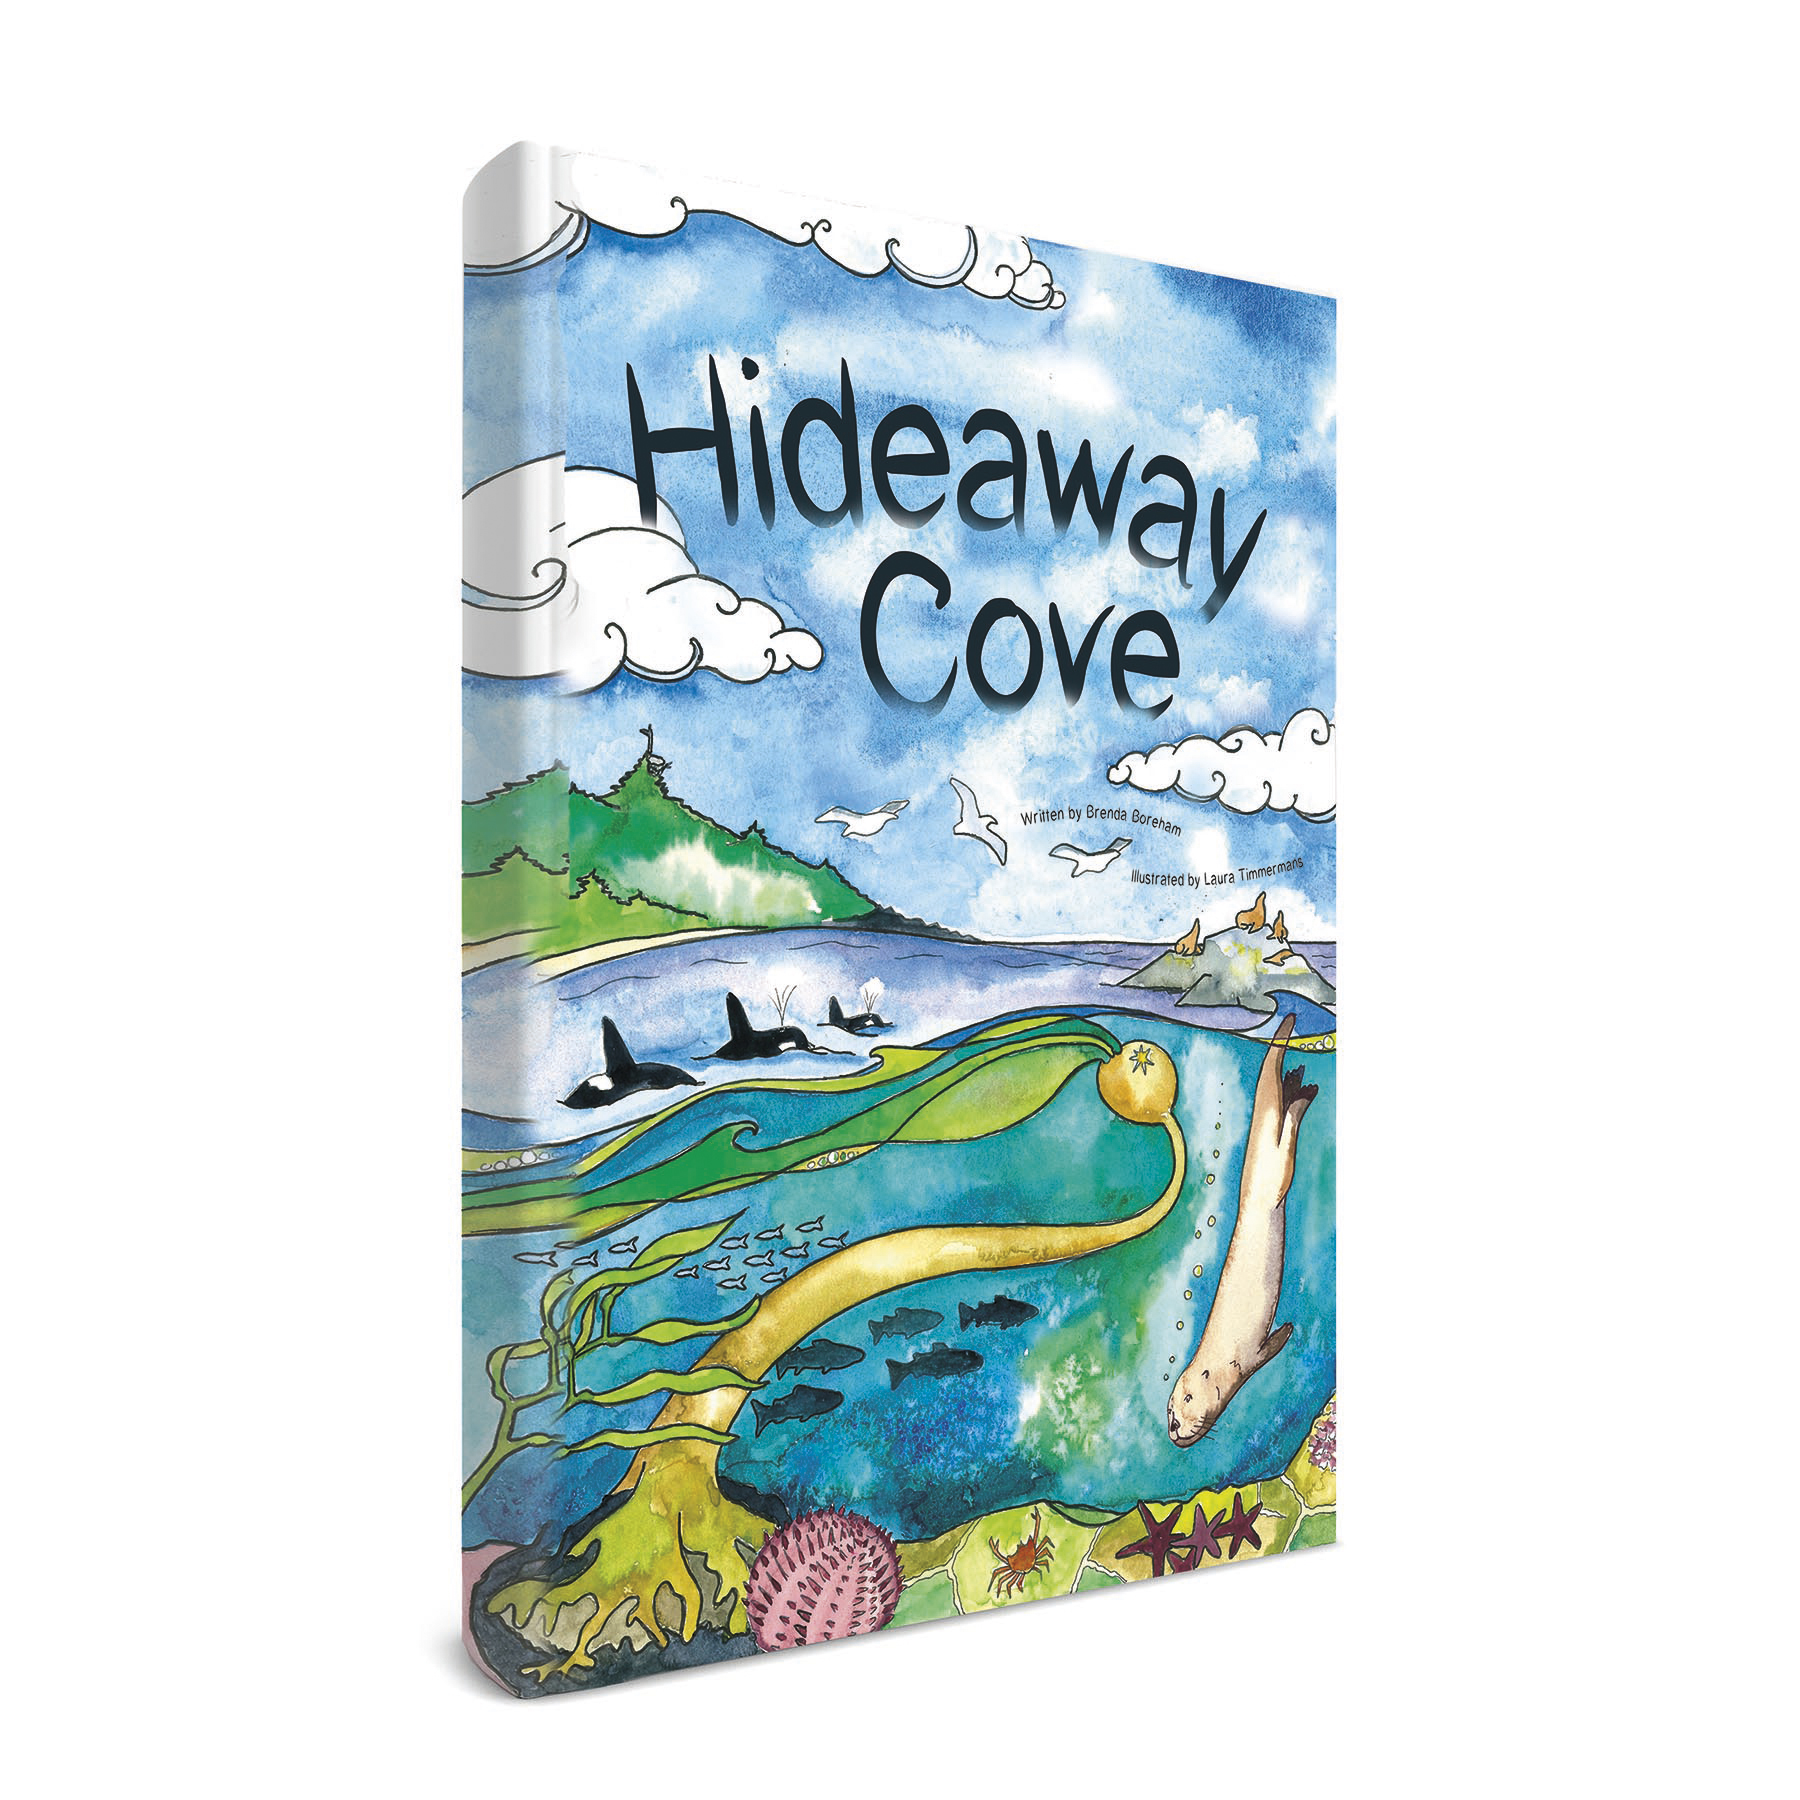 promo-bookcover-hideaway-cove-small